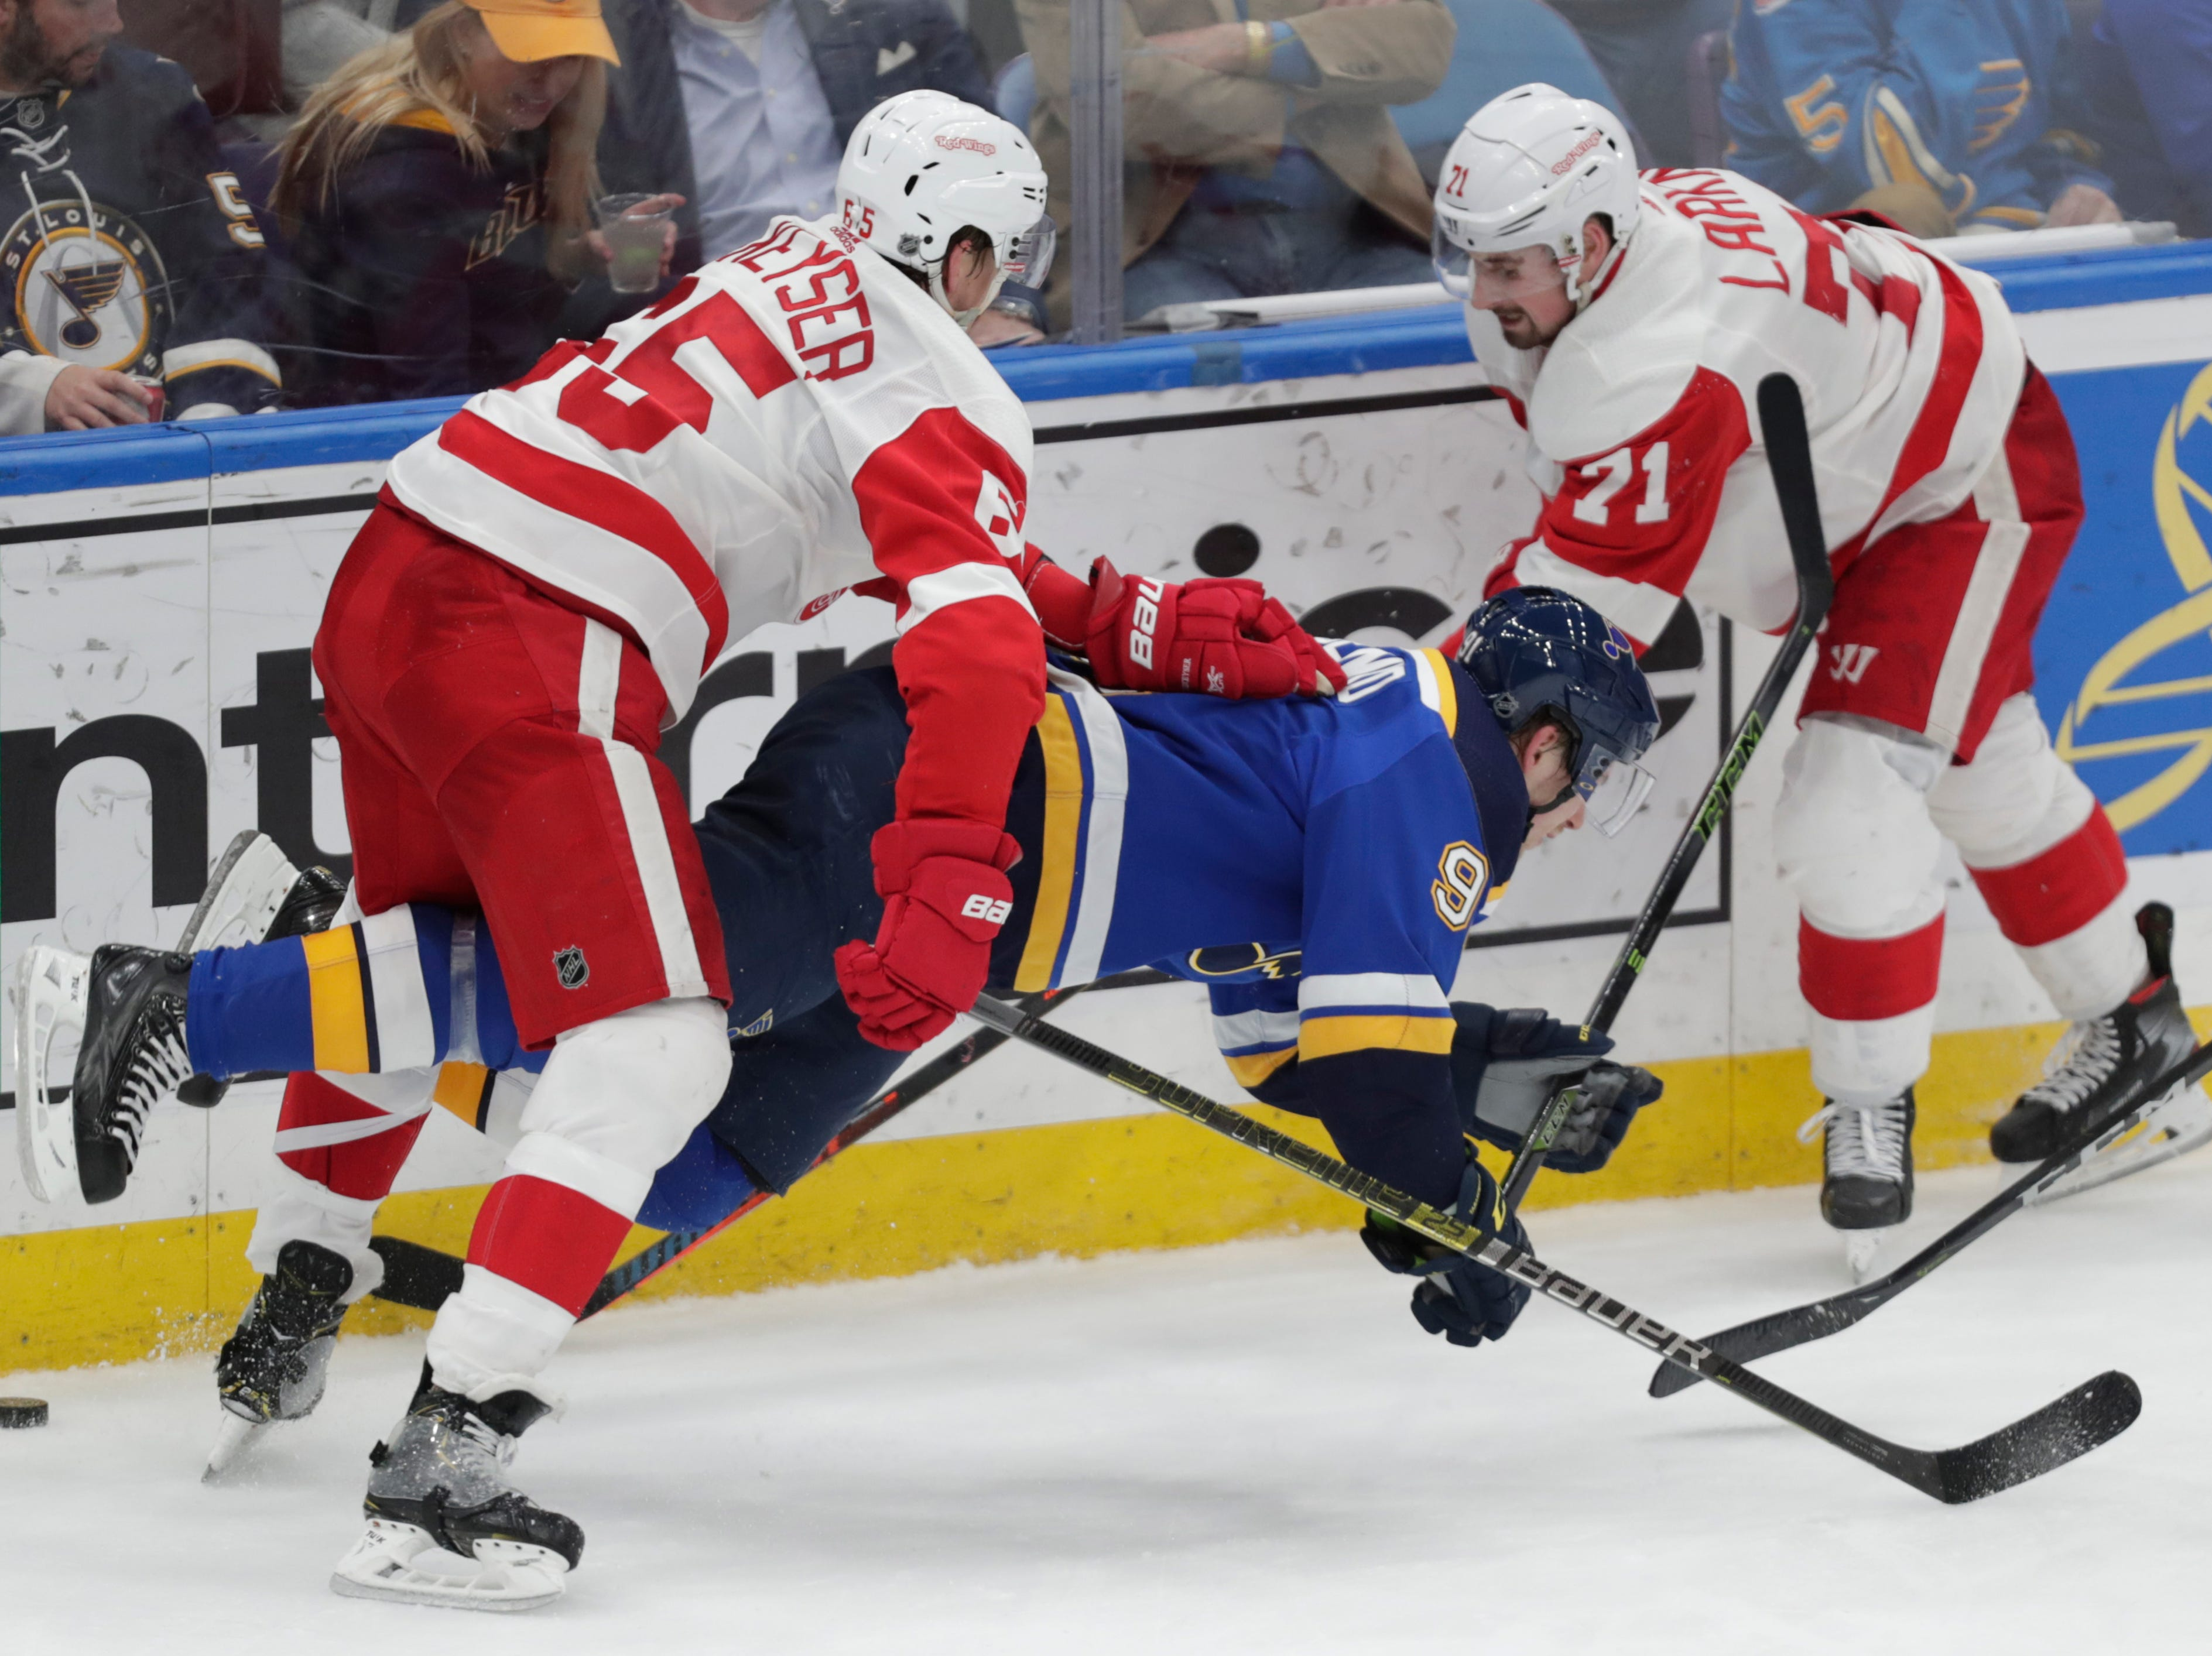 St. Louis' Vladimir Tarasenko is leveled from behind by Detroit's Danny DeKeyser (65) as Dylan Larkin reaches for the puck.